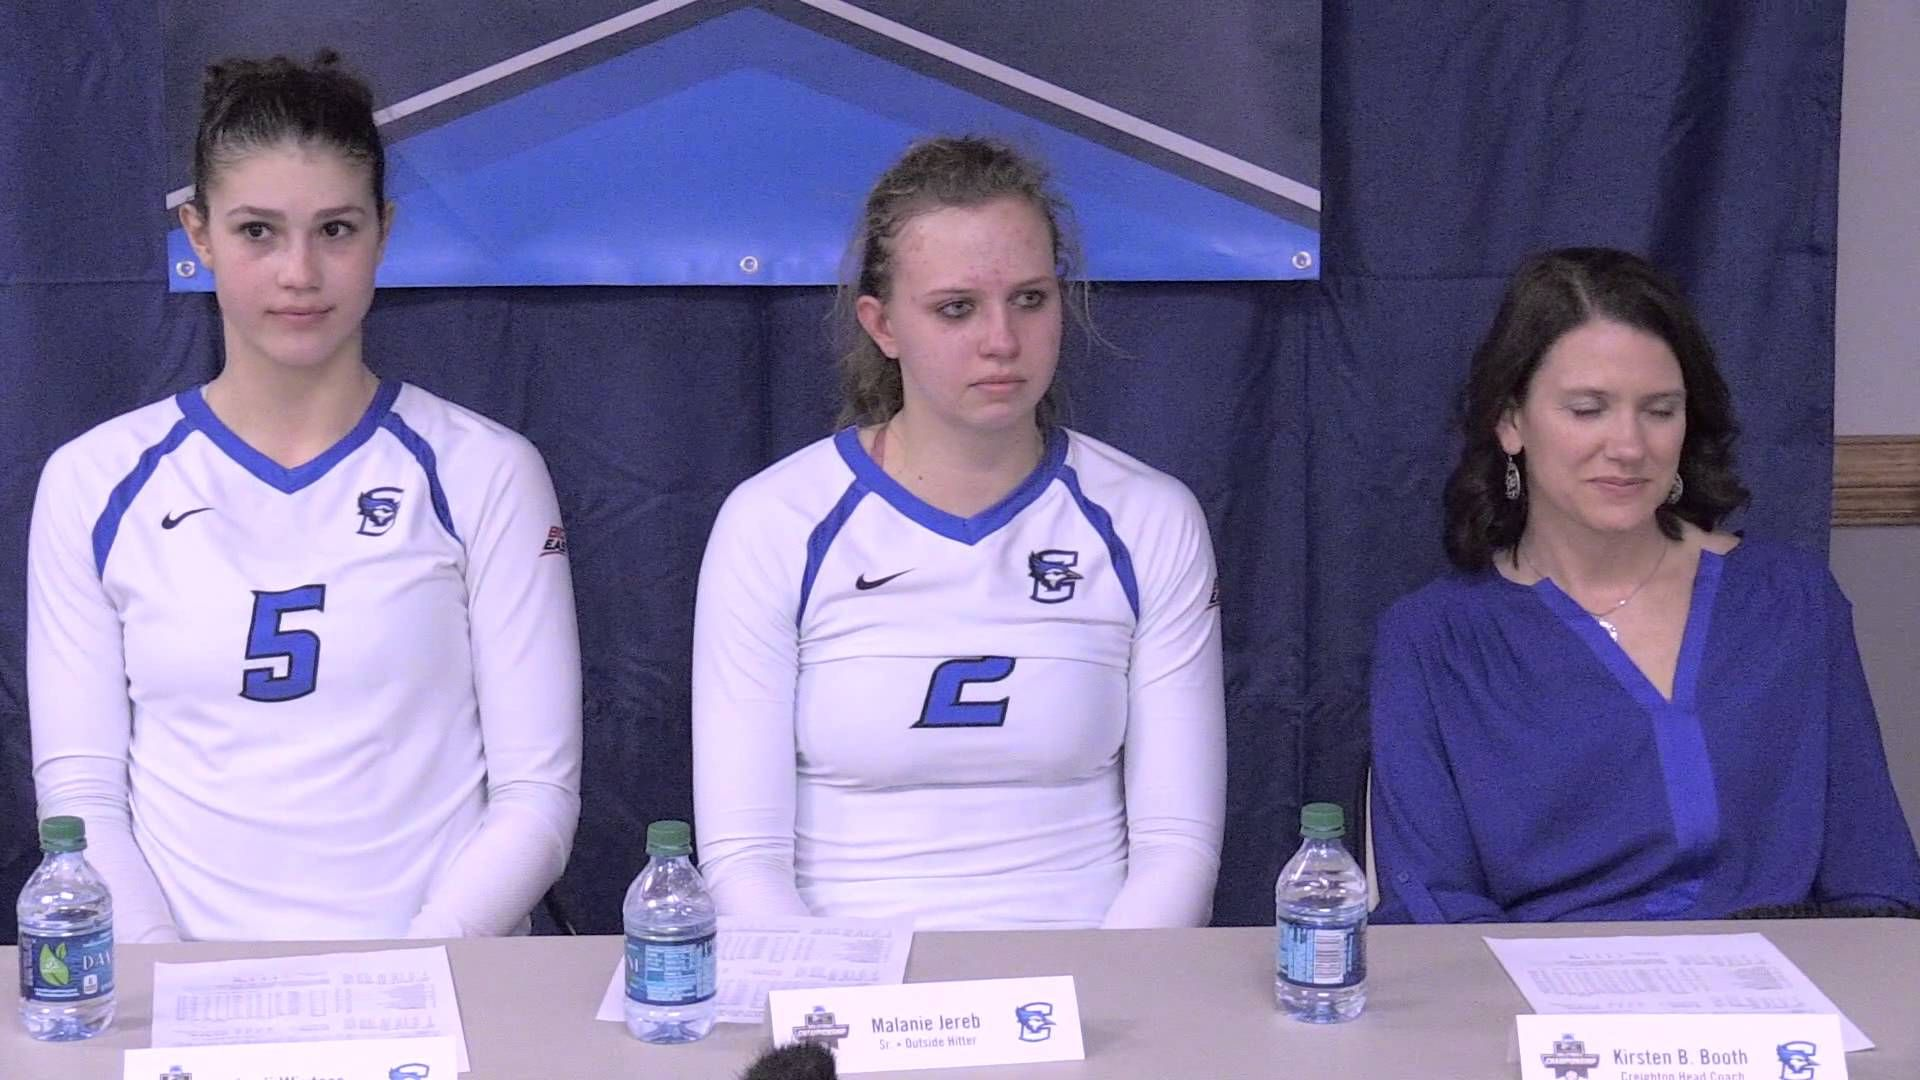 Creighton Volleyball Press Conference After Unc Win 12 5 15 Volleyball News Creighton Volleyball